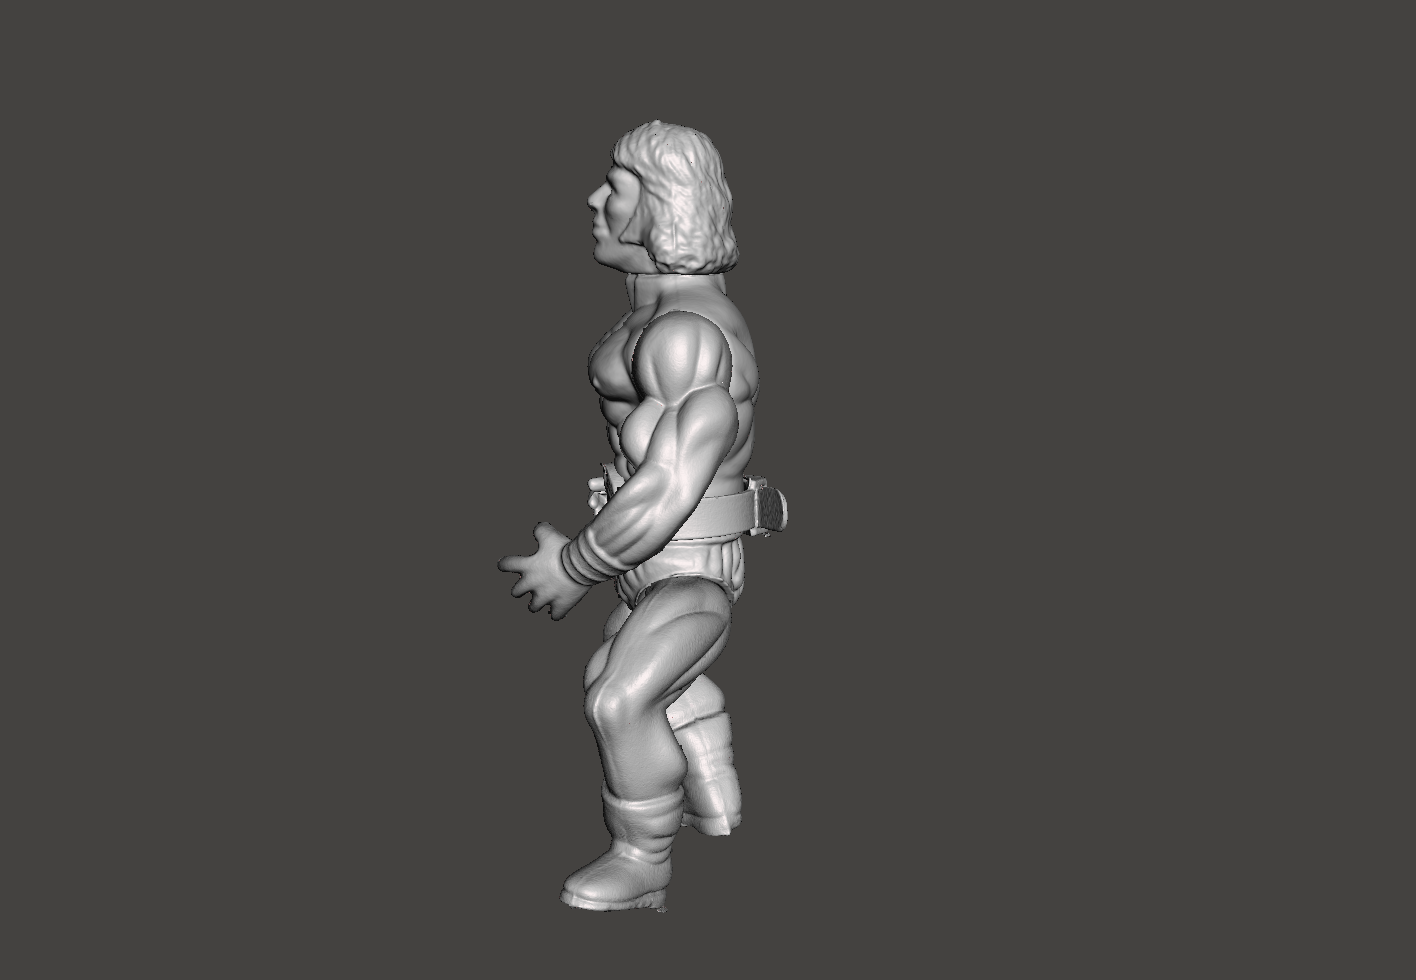 02_GXF.png Download STL file BOOTLEG GALAXY FIGHTER, GALAXY WARRIOR 2 • 3D printing object, MisJuguetes